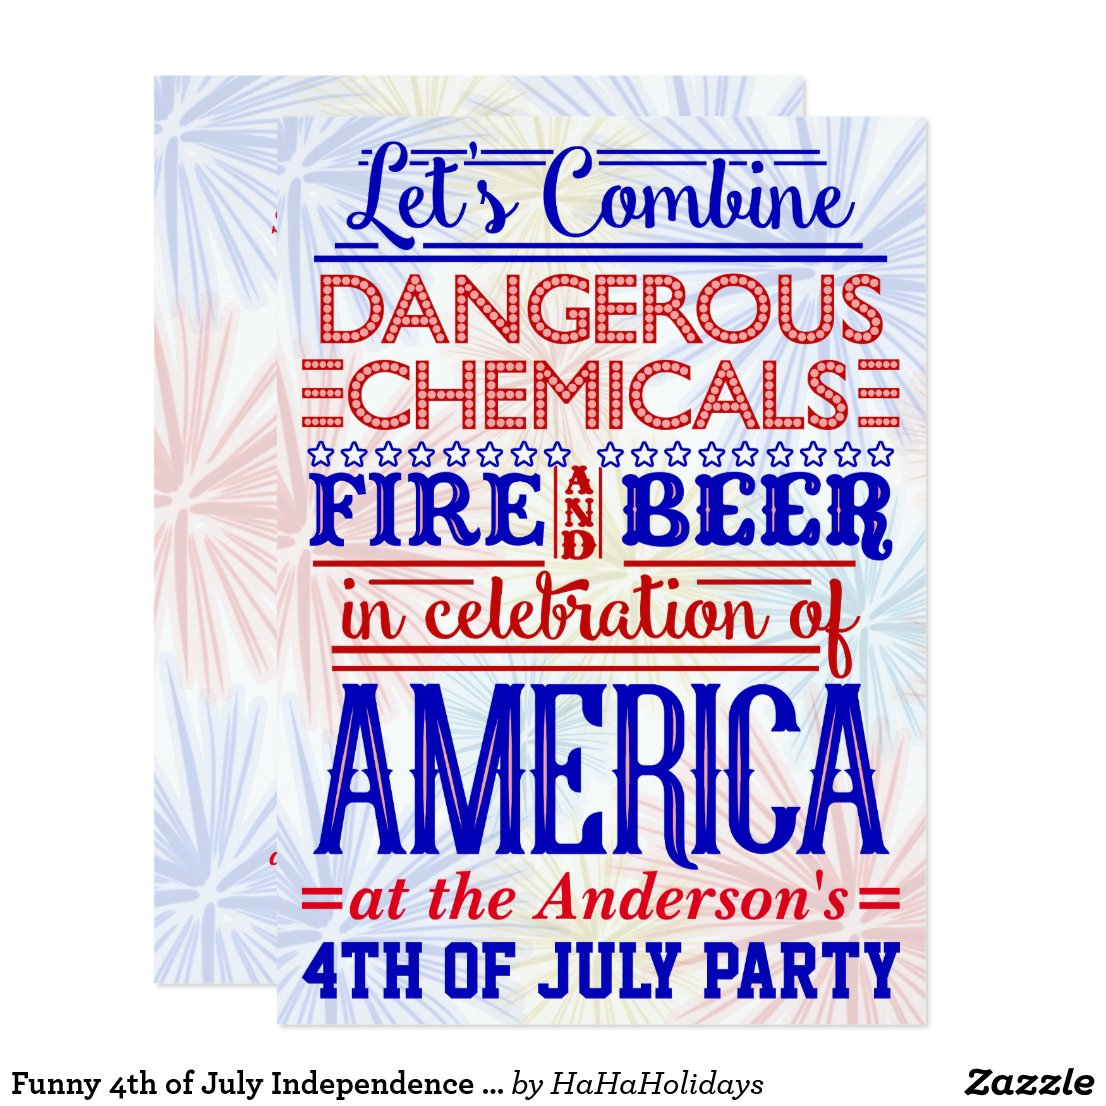 Funny 4th of July Independence Day Party Humor Card